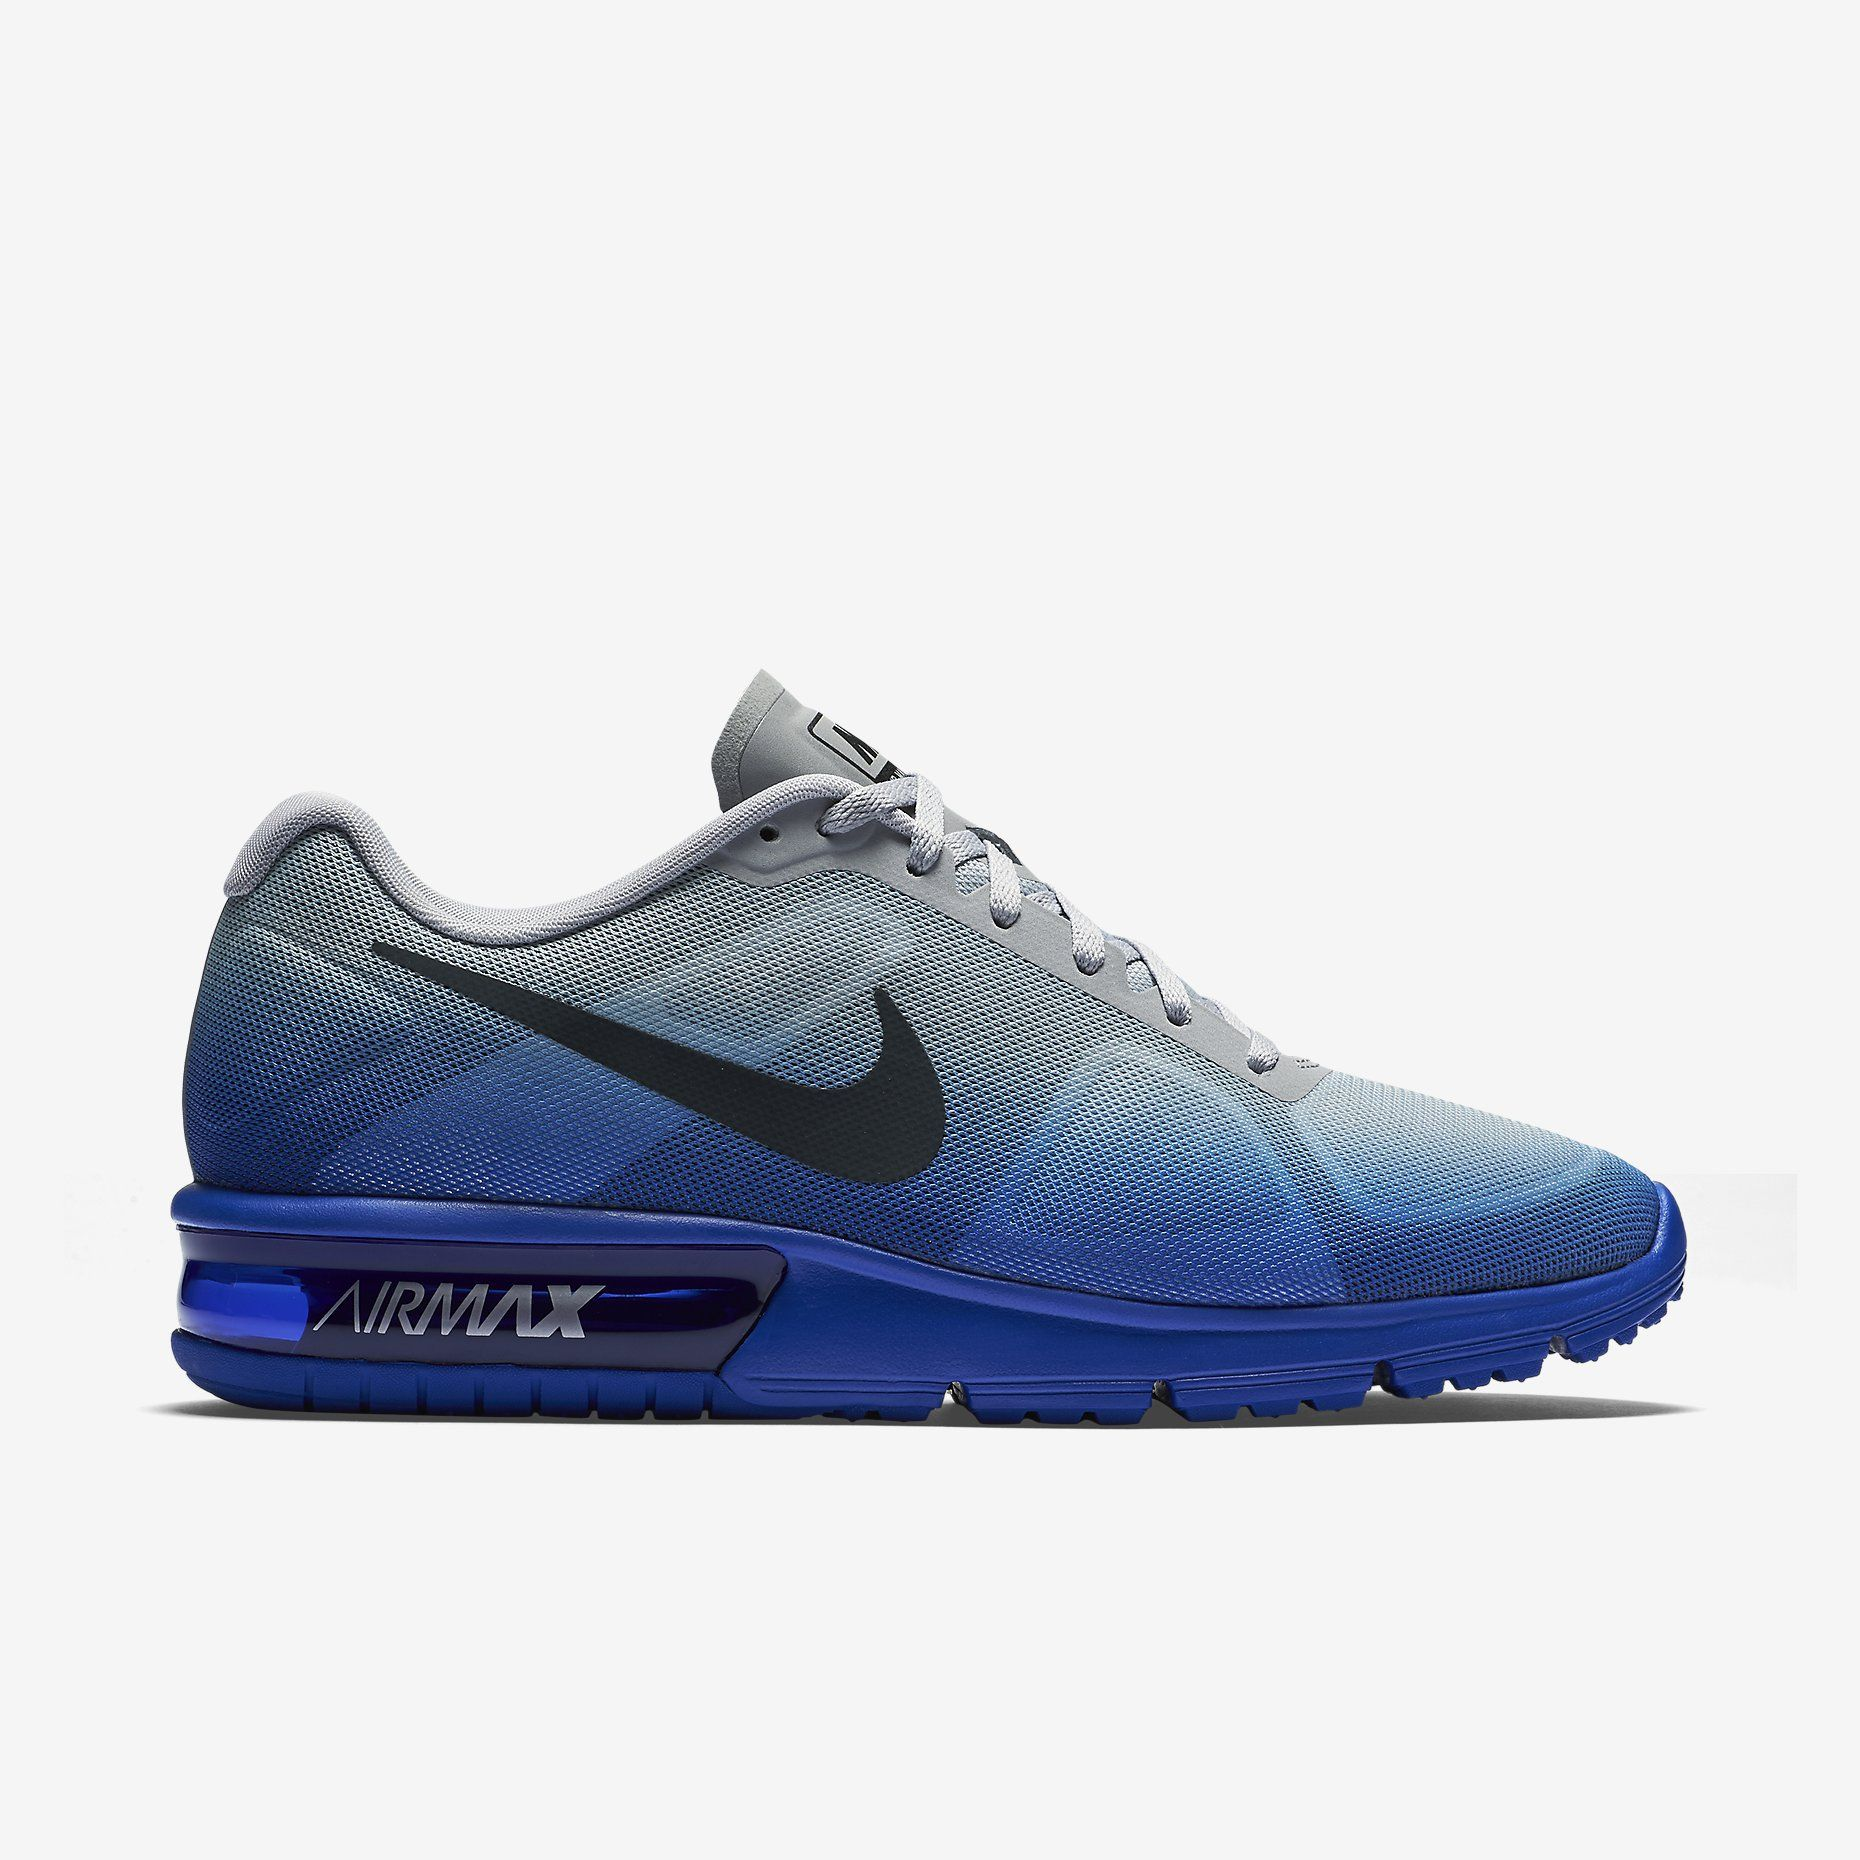 nike air max sequent blue grey sneakers pinterest blue grey air max and nike air max. Black Bedroom Furniture Sets. Home Design Ideas